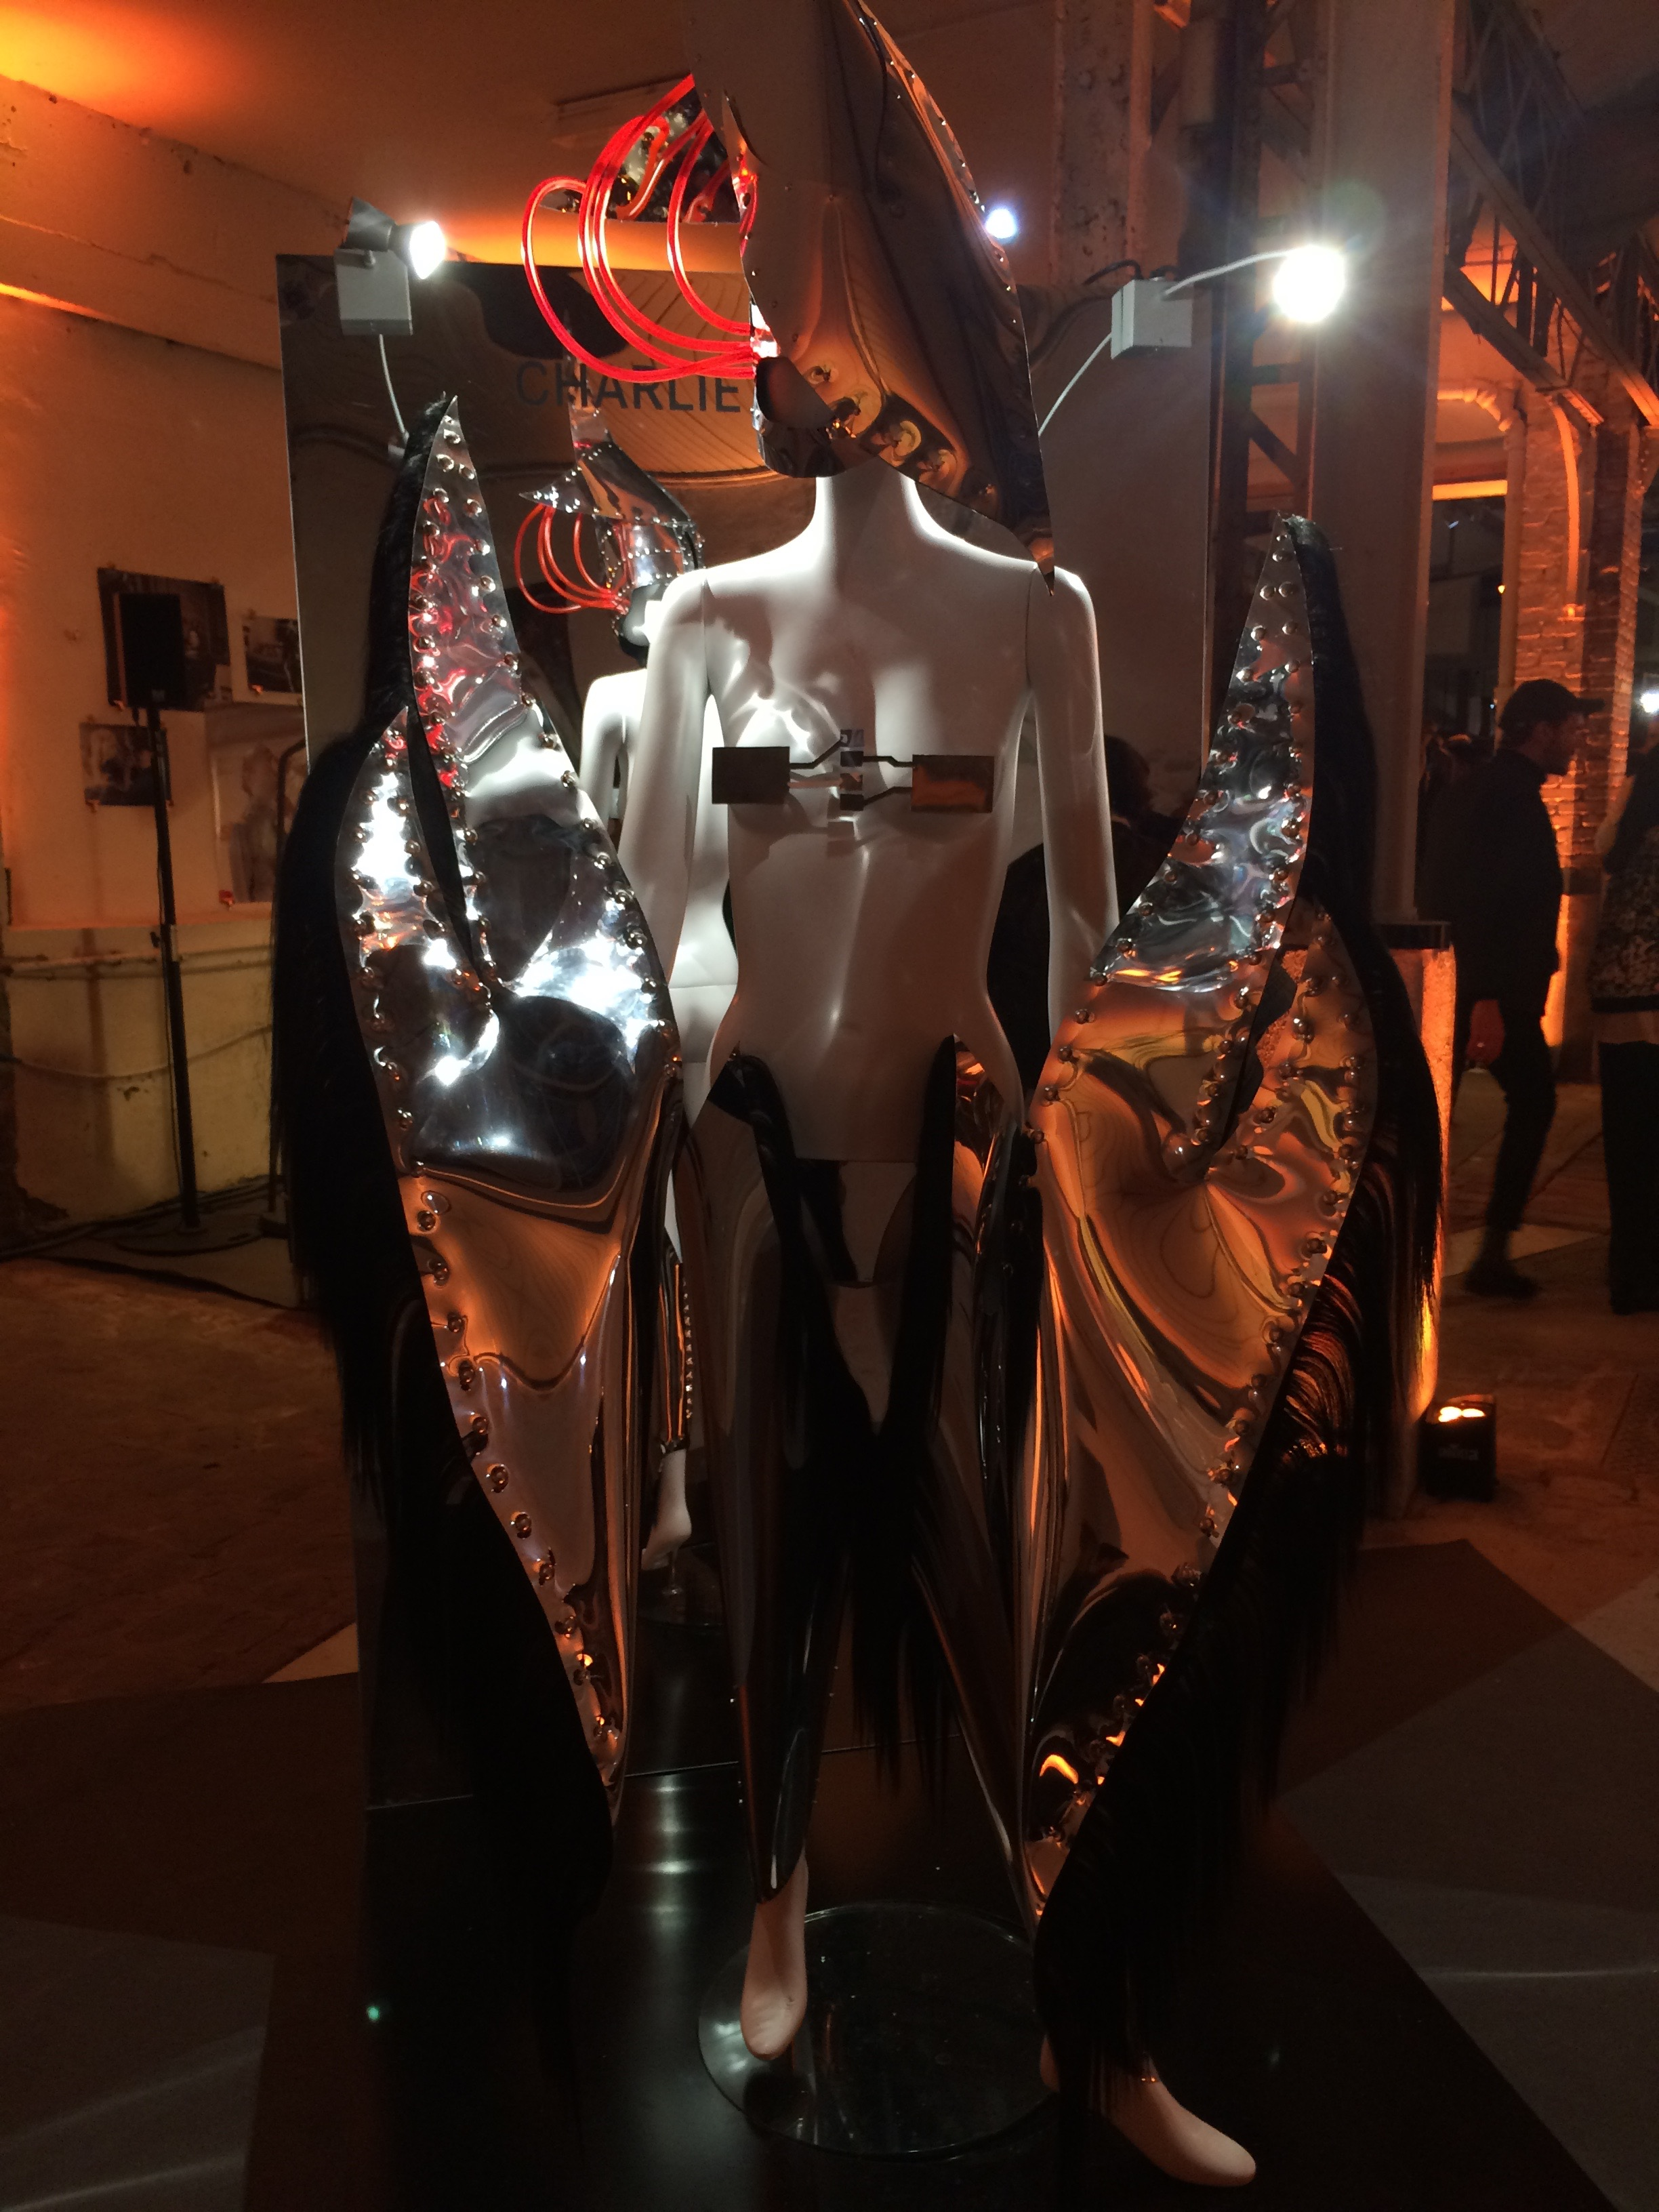 Charlie Le Mindu featured at Les Etoiles, Mercedez-Benz & Alexis Mabille cocktail party